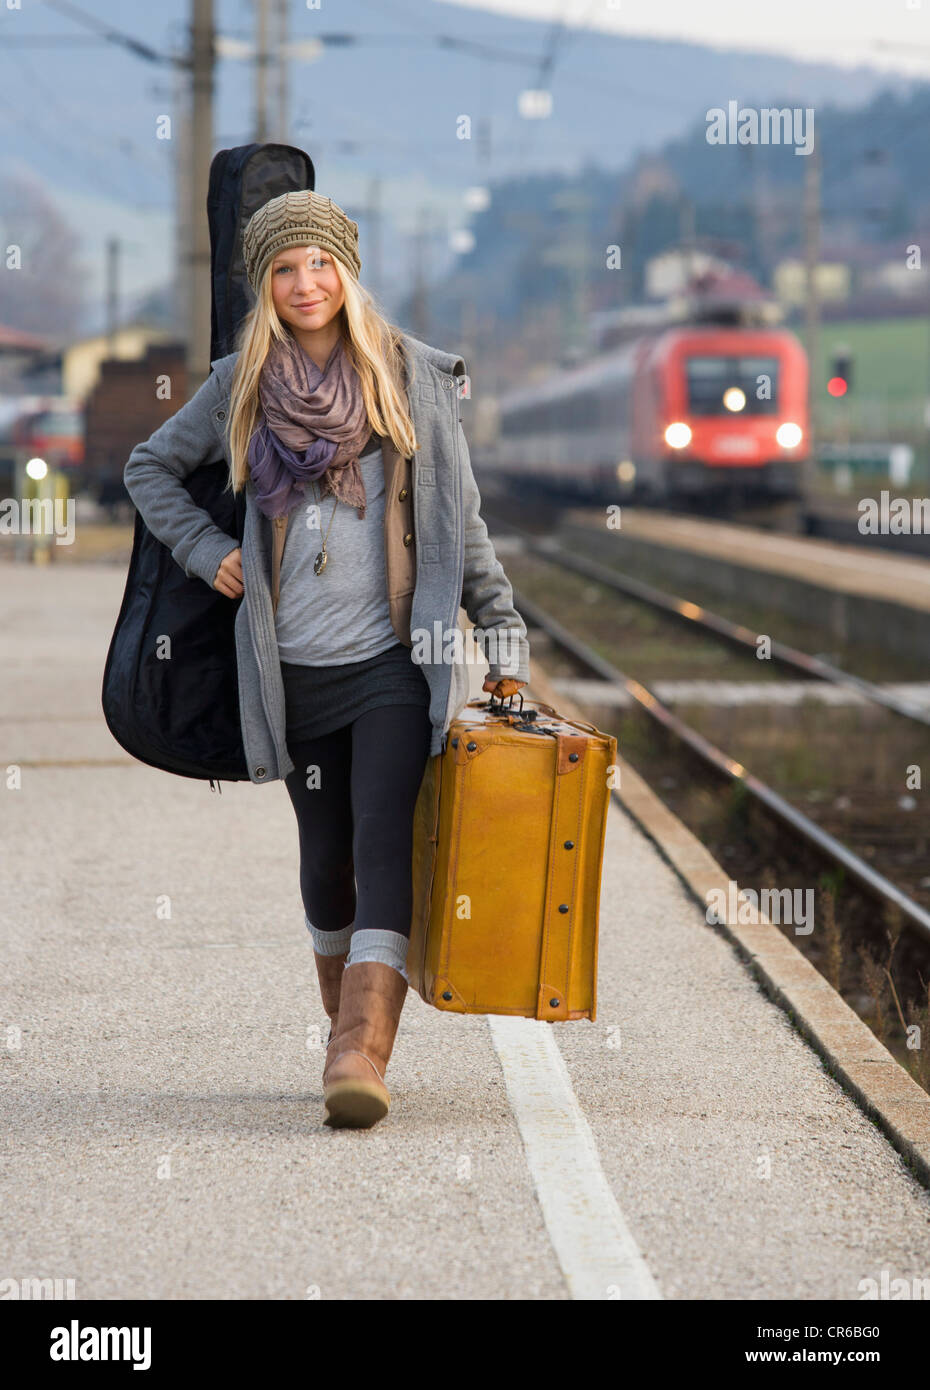 Austria, Teenage girl with suitcase on train station - Stock Image